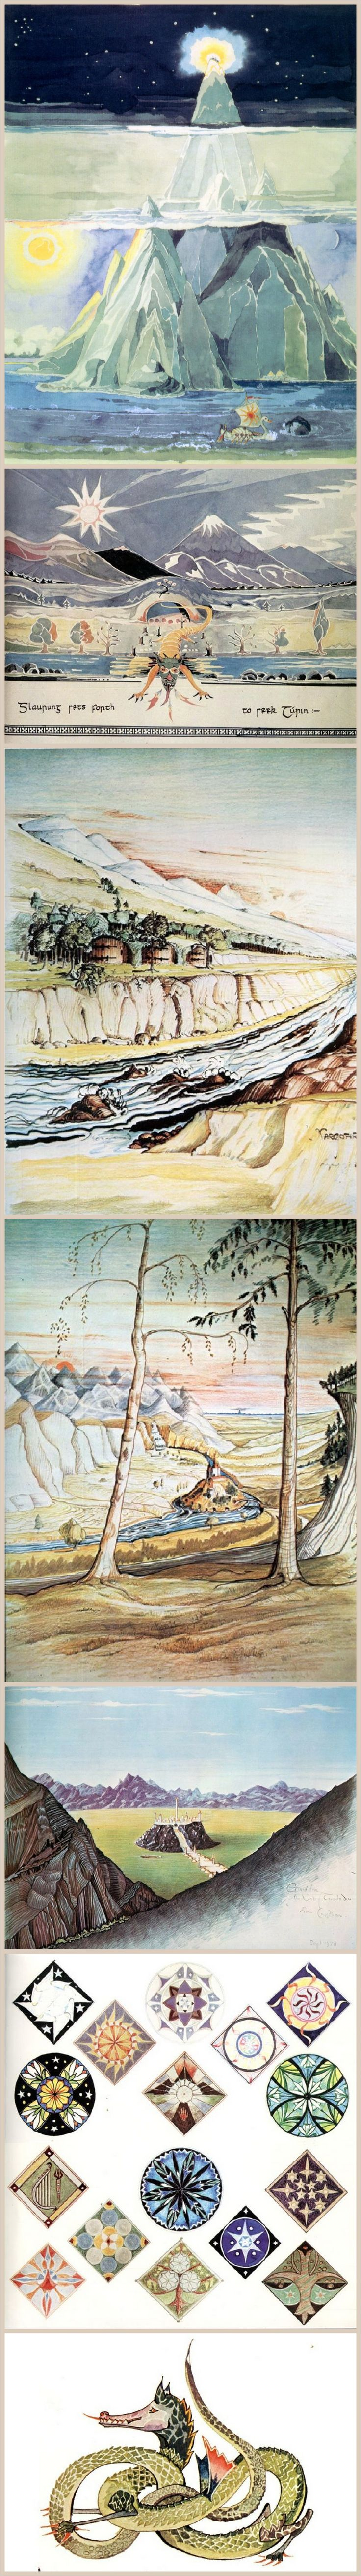 Tolkein's own paintings for The Silmarillion. So he's a talented painter as well. Is there no end to this man's genius?